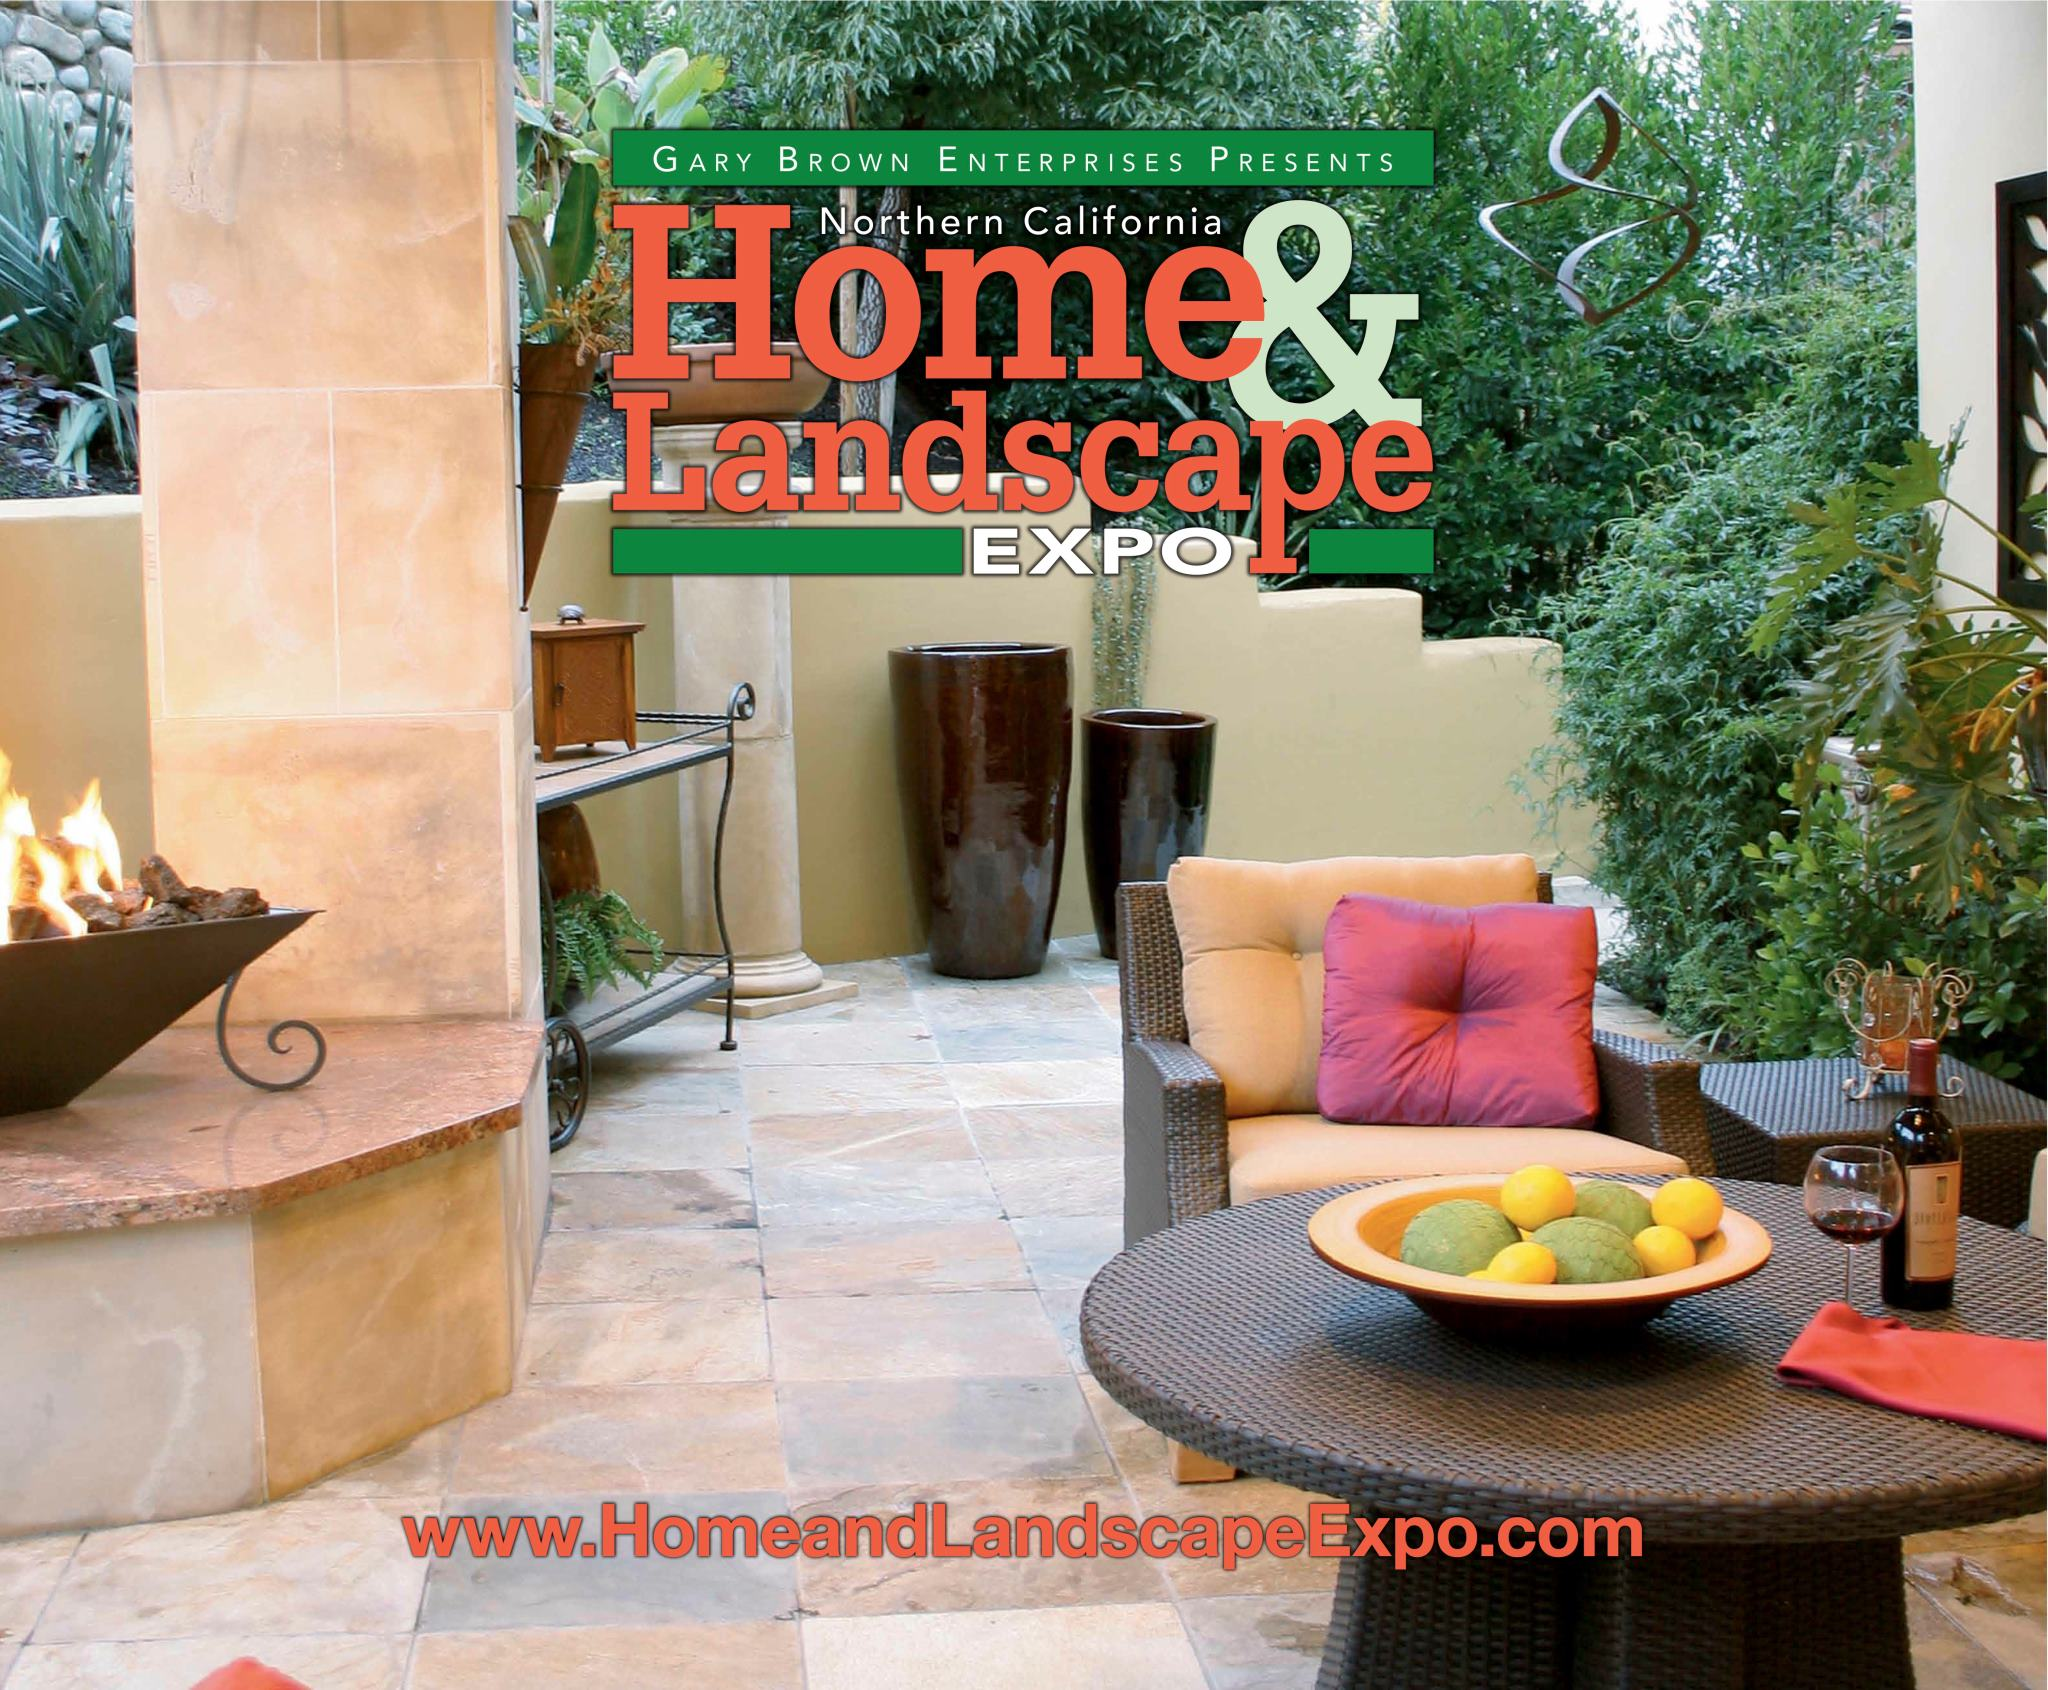 Northern California Home And Landscape Expo Presented By